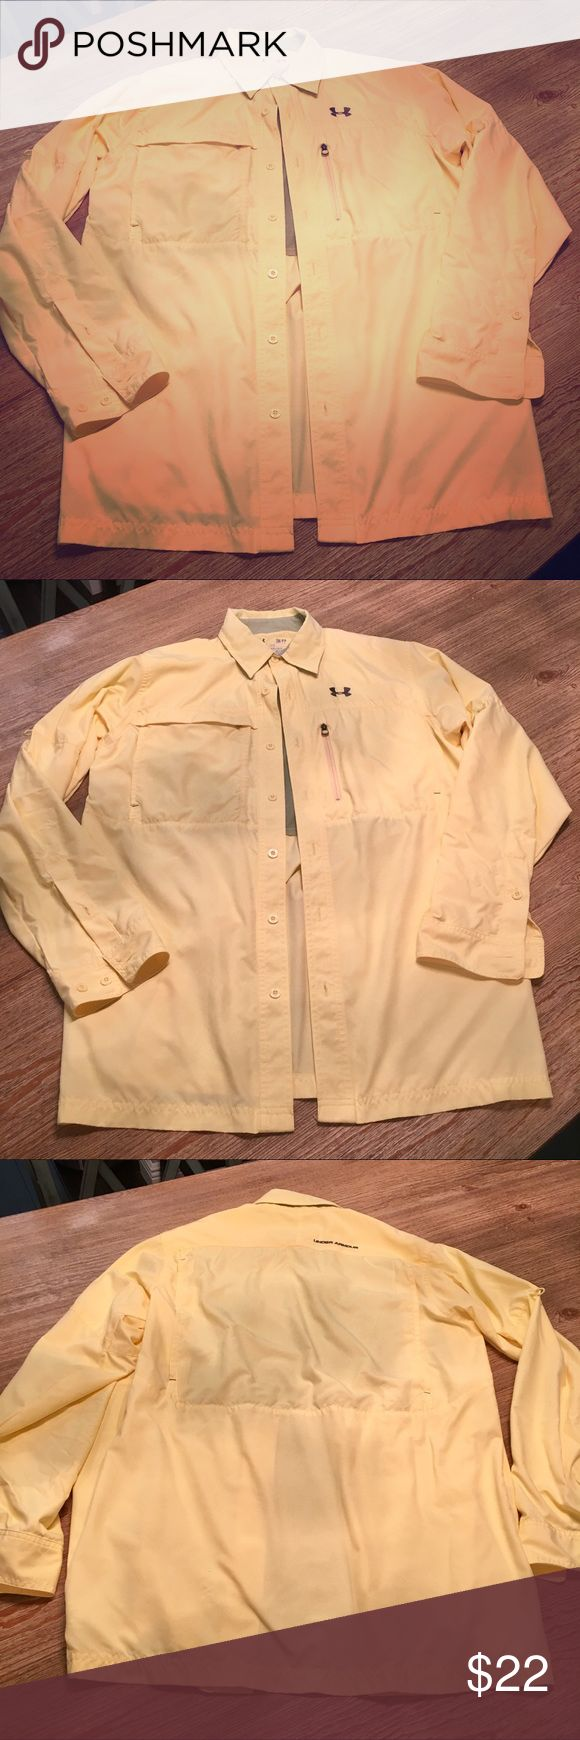 UNDER ARMOUR men's fishing shirt size S LIKE NEW!! •UNDER ARMOUR fishing shirt, size Small •Excellent condition---only worn once!!! •from a smoke free/pet free home Under Armour Shirts Tees - Long Sleeve